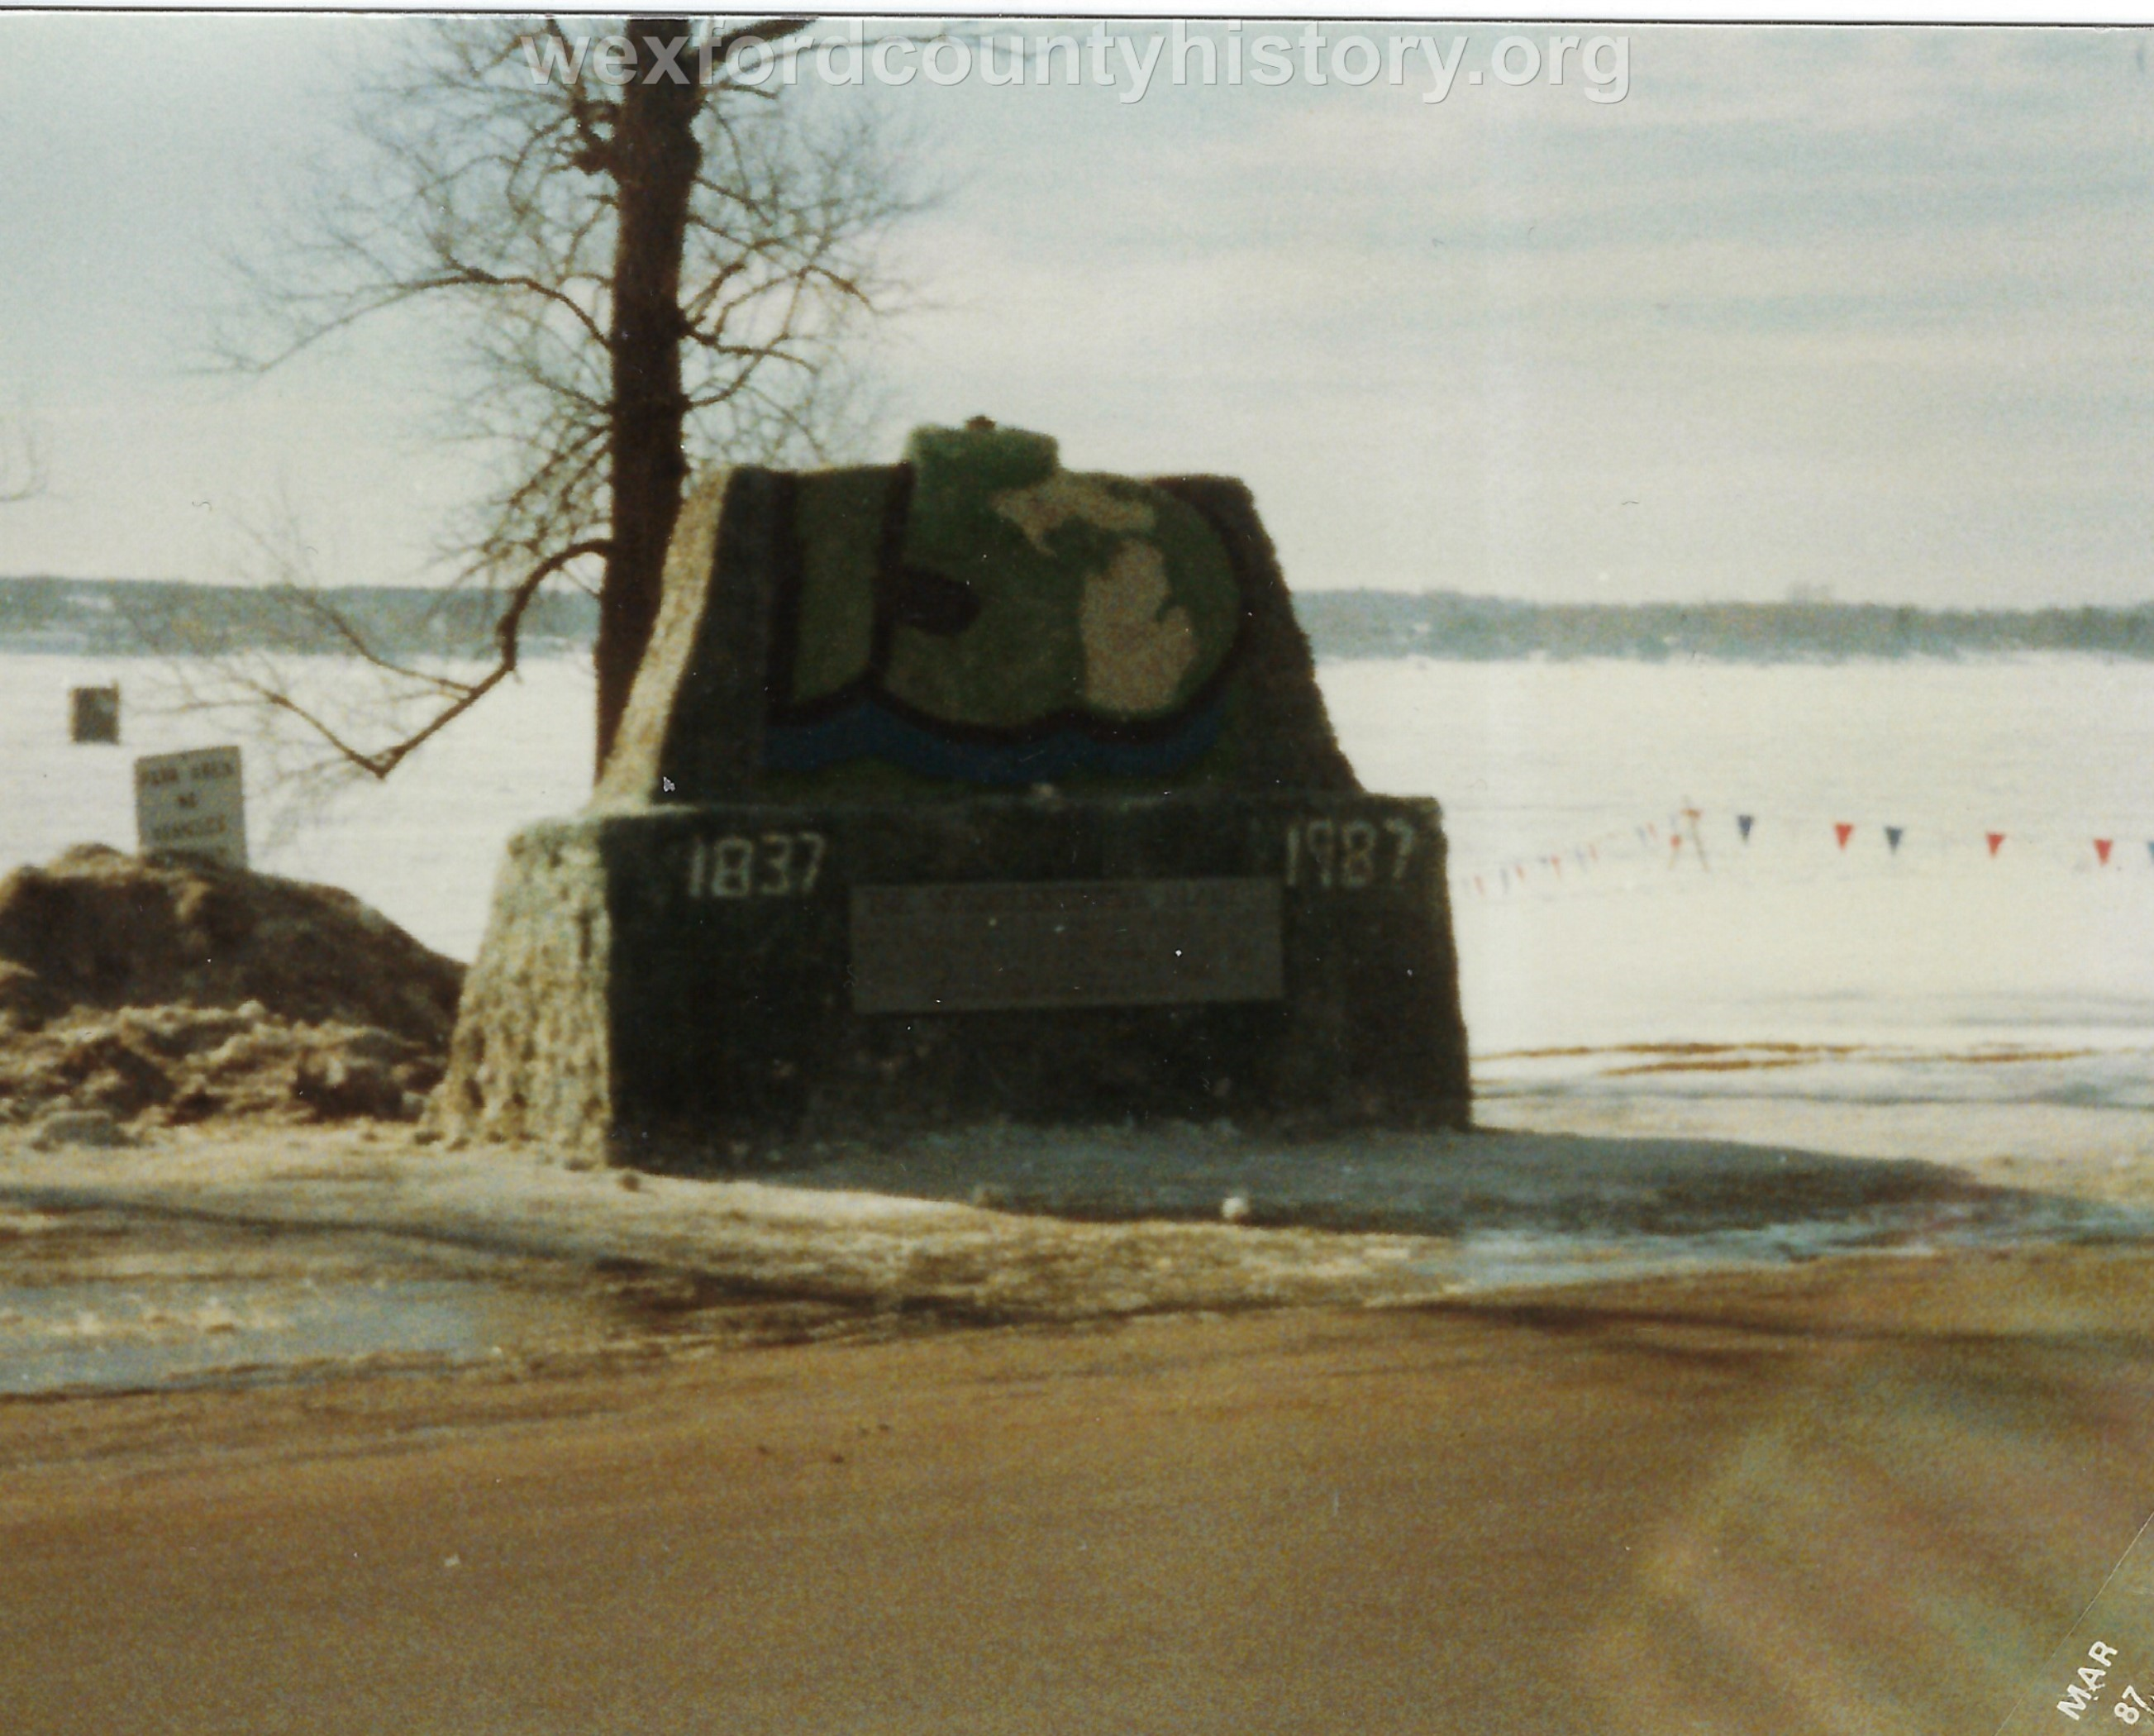 Cadillac-Recreation-Ice-Sculptures-On-Lake-Cadillac-For-Snowmobile-Festival-14